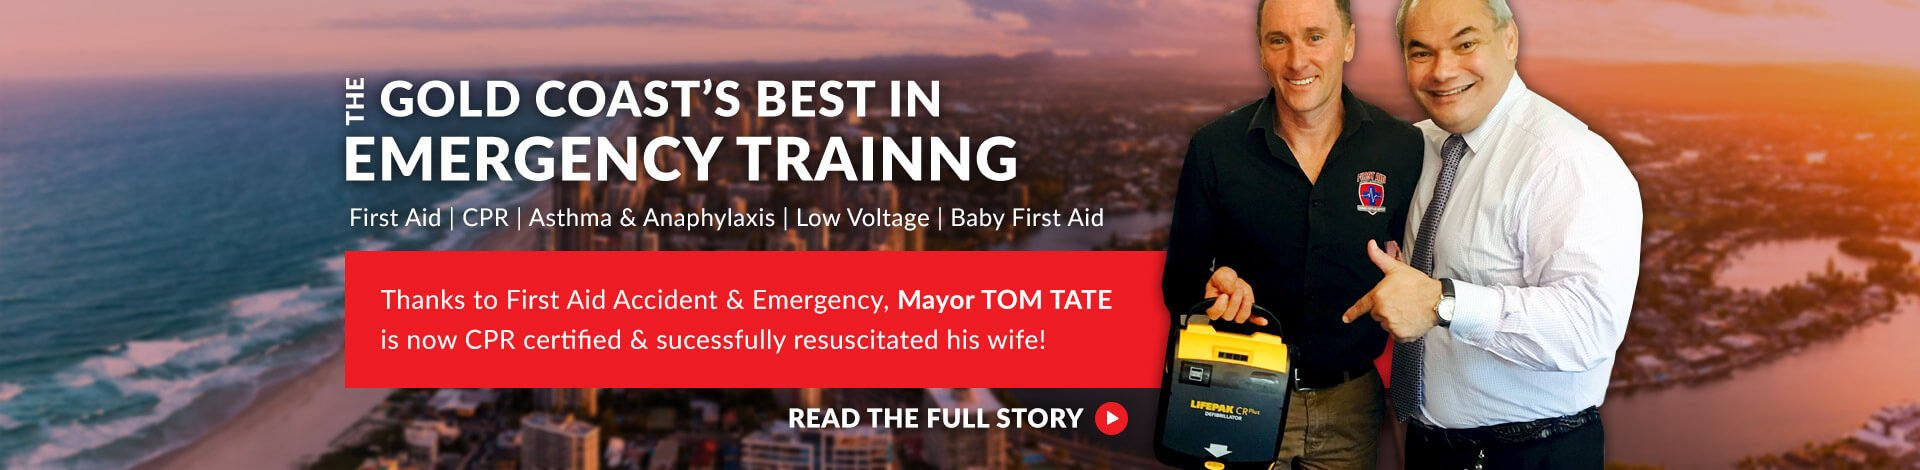 Mayor Tom Tate CPR Gold Coast